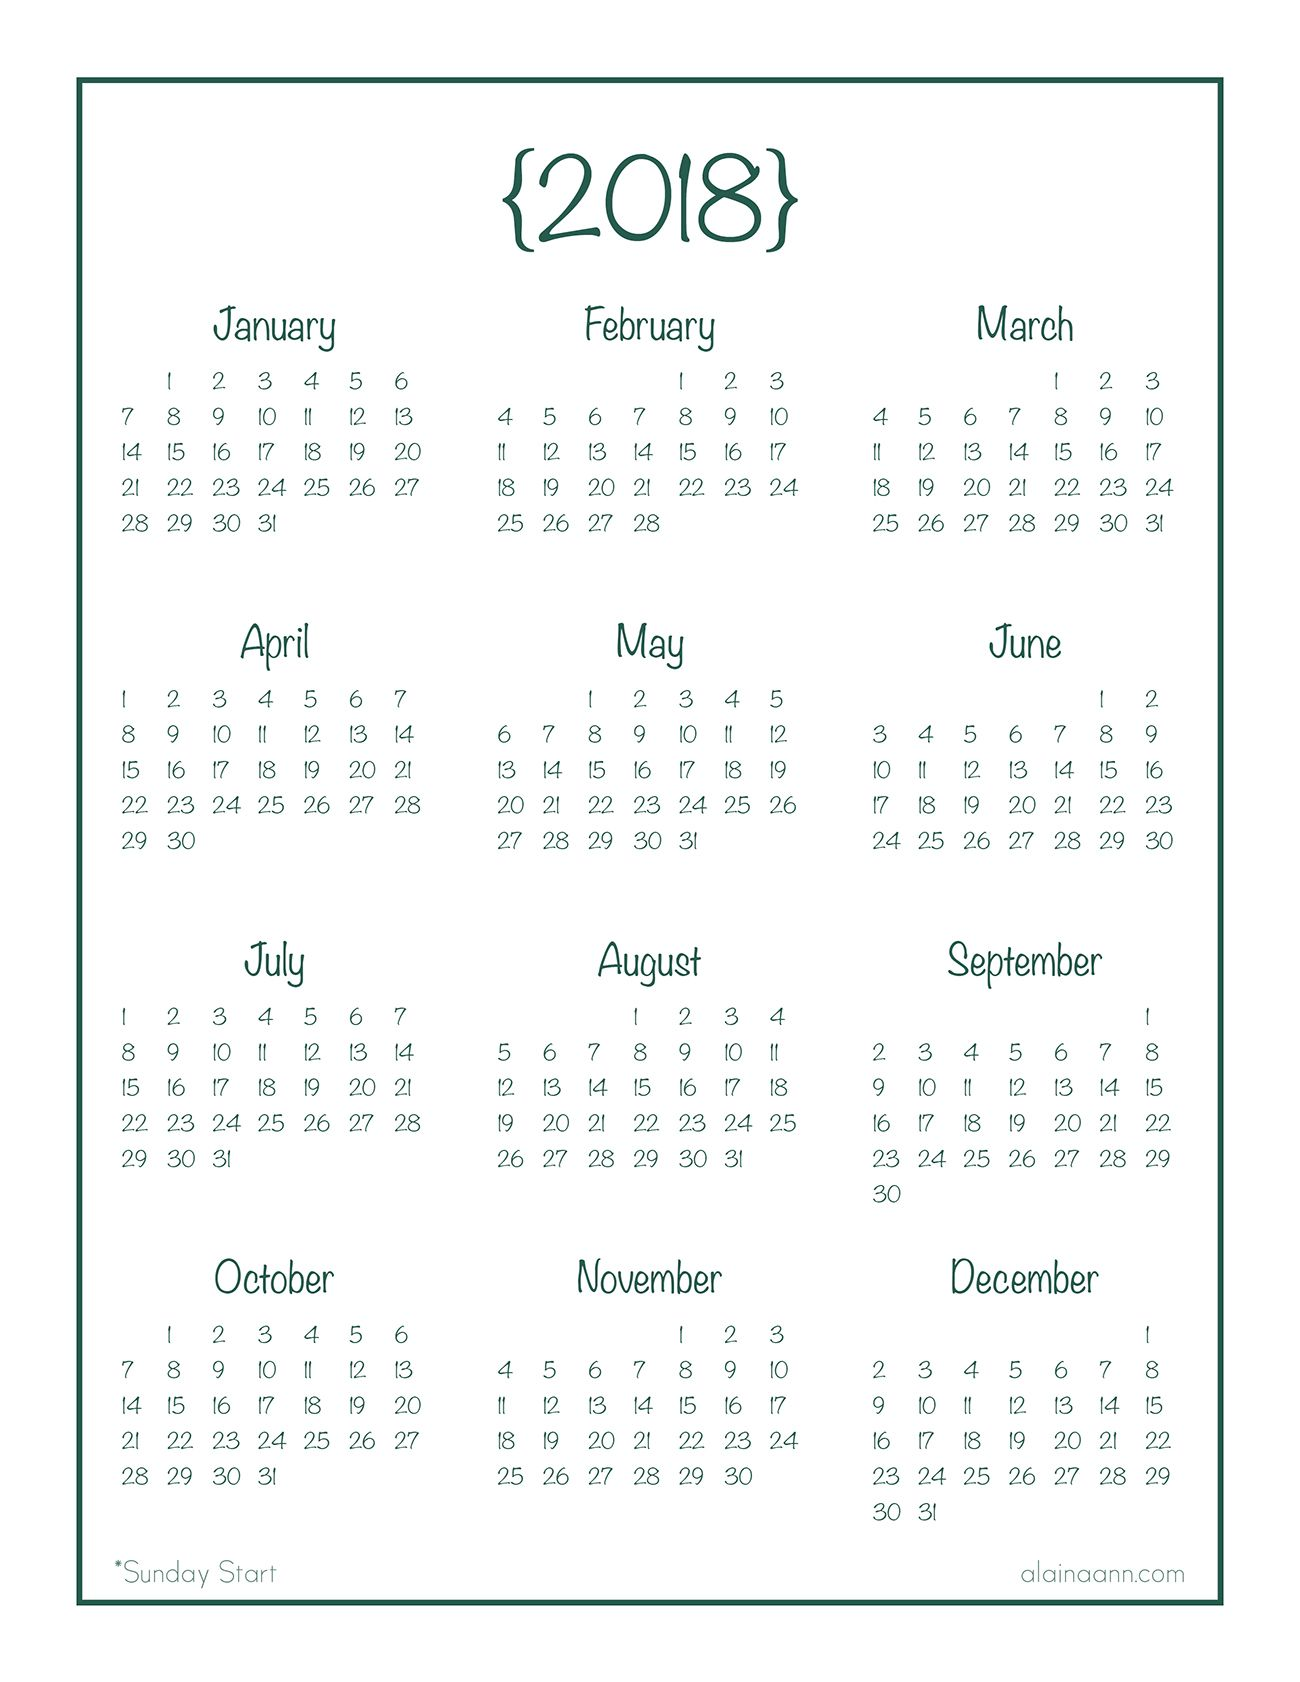 Lost White Card Nsw 2018 Year At A Glance Calendar Free Printable Planner